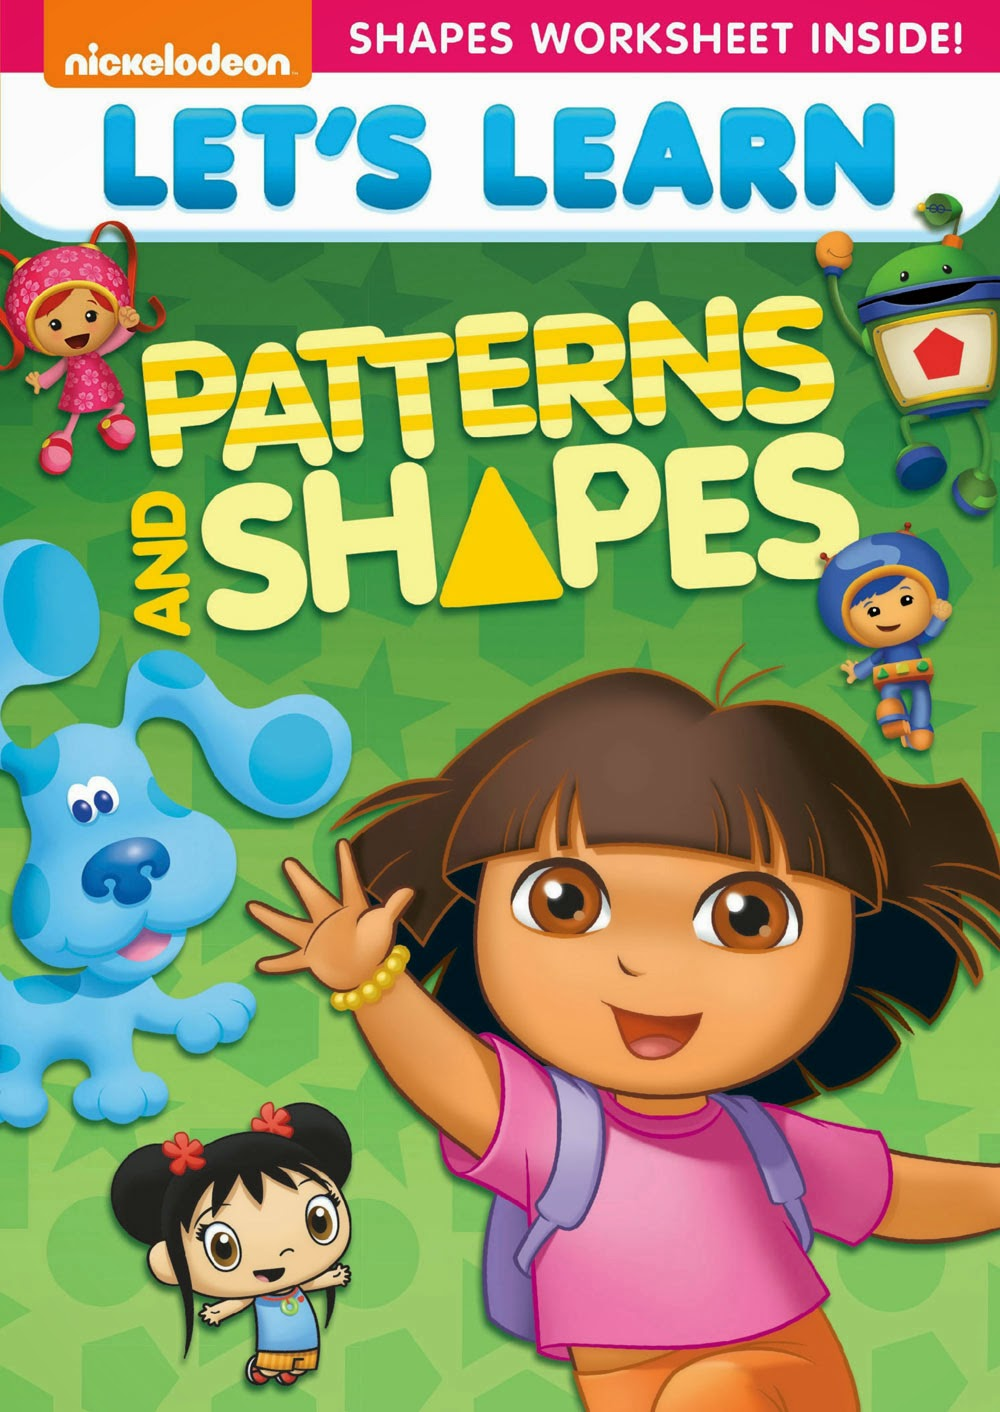 http://threeboysandanoldlady.blogspot.com/2014/09/nickelodeon-lets-learn-patterns-shapes_9.html